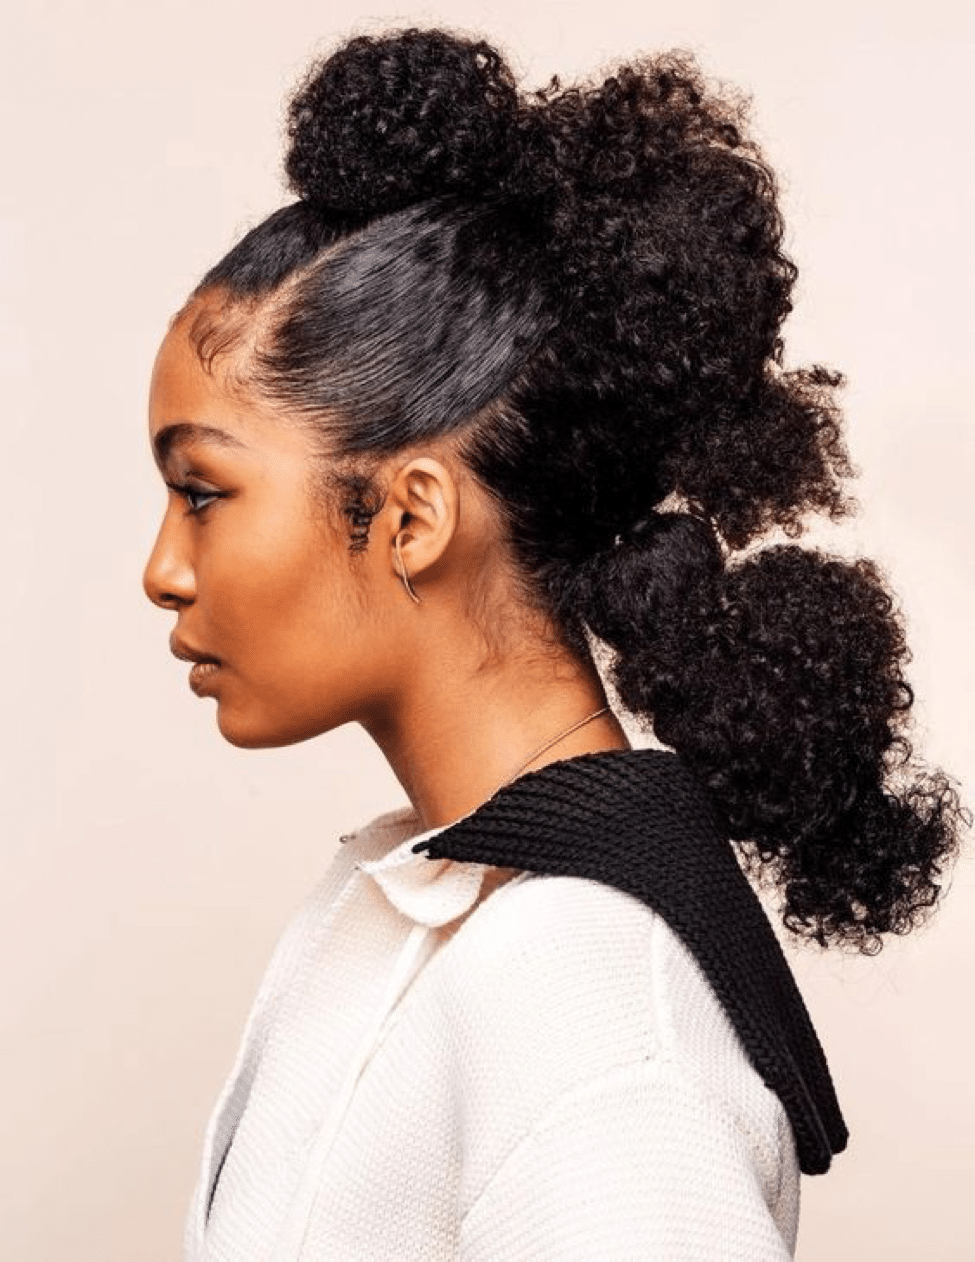 Ponytail Hairstyles for Black Female Hair – 20 different styles!